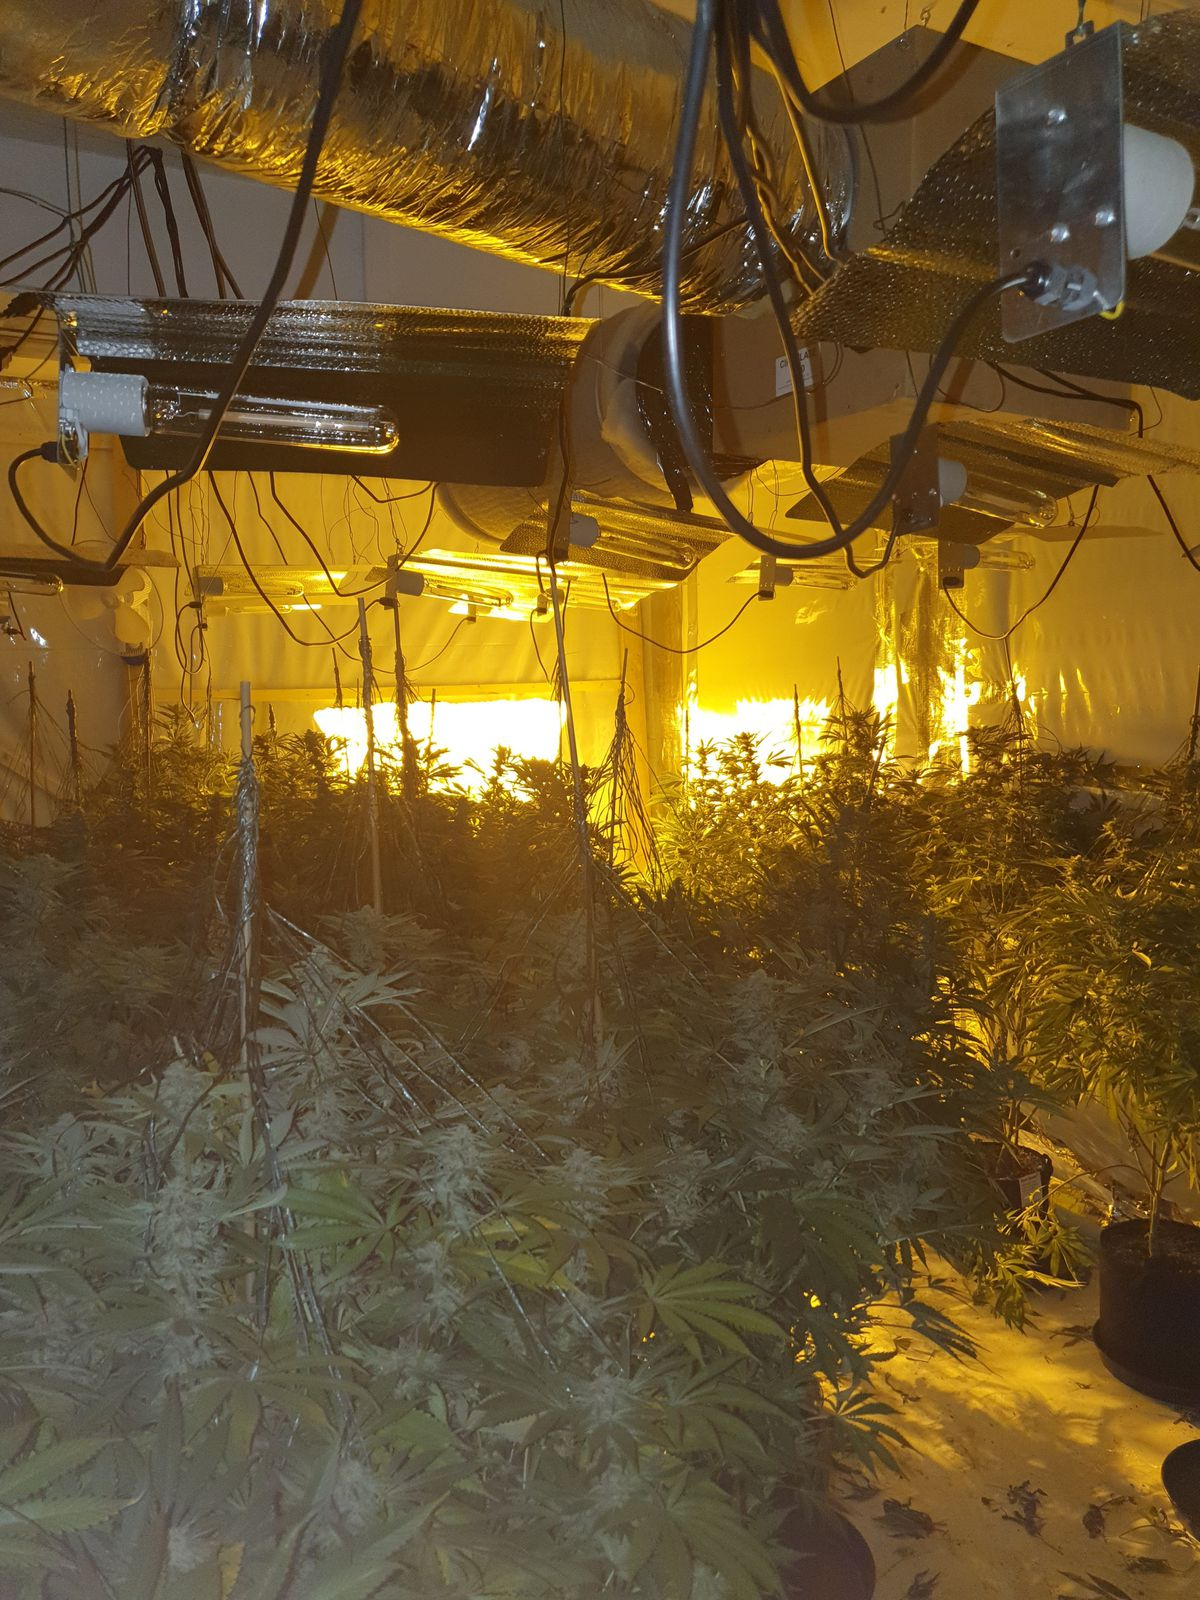 More than 300 plants were found at the address. Photo: St Matthew's Police